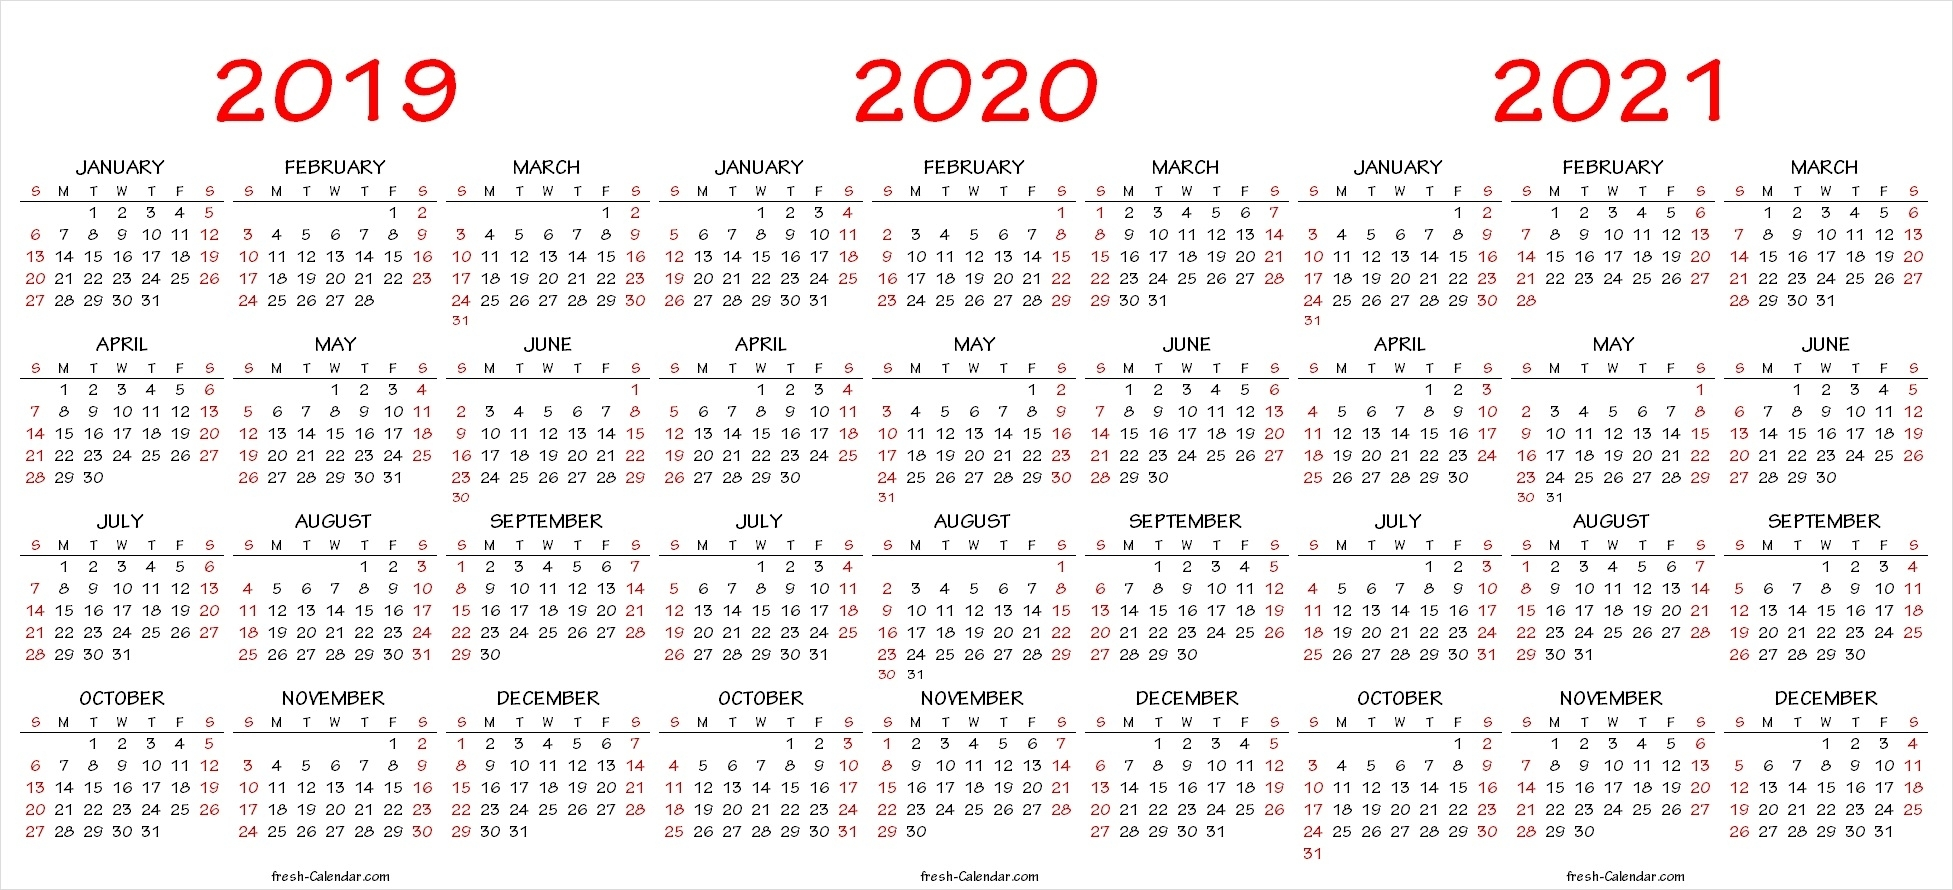 Three Yearly Calendar 2019 2020 2021 Printable Free | Blank Template with Free Printable 3 Year Calendar 2019 2020 2021